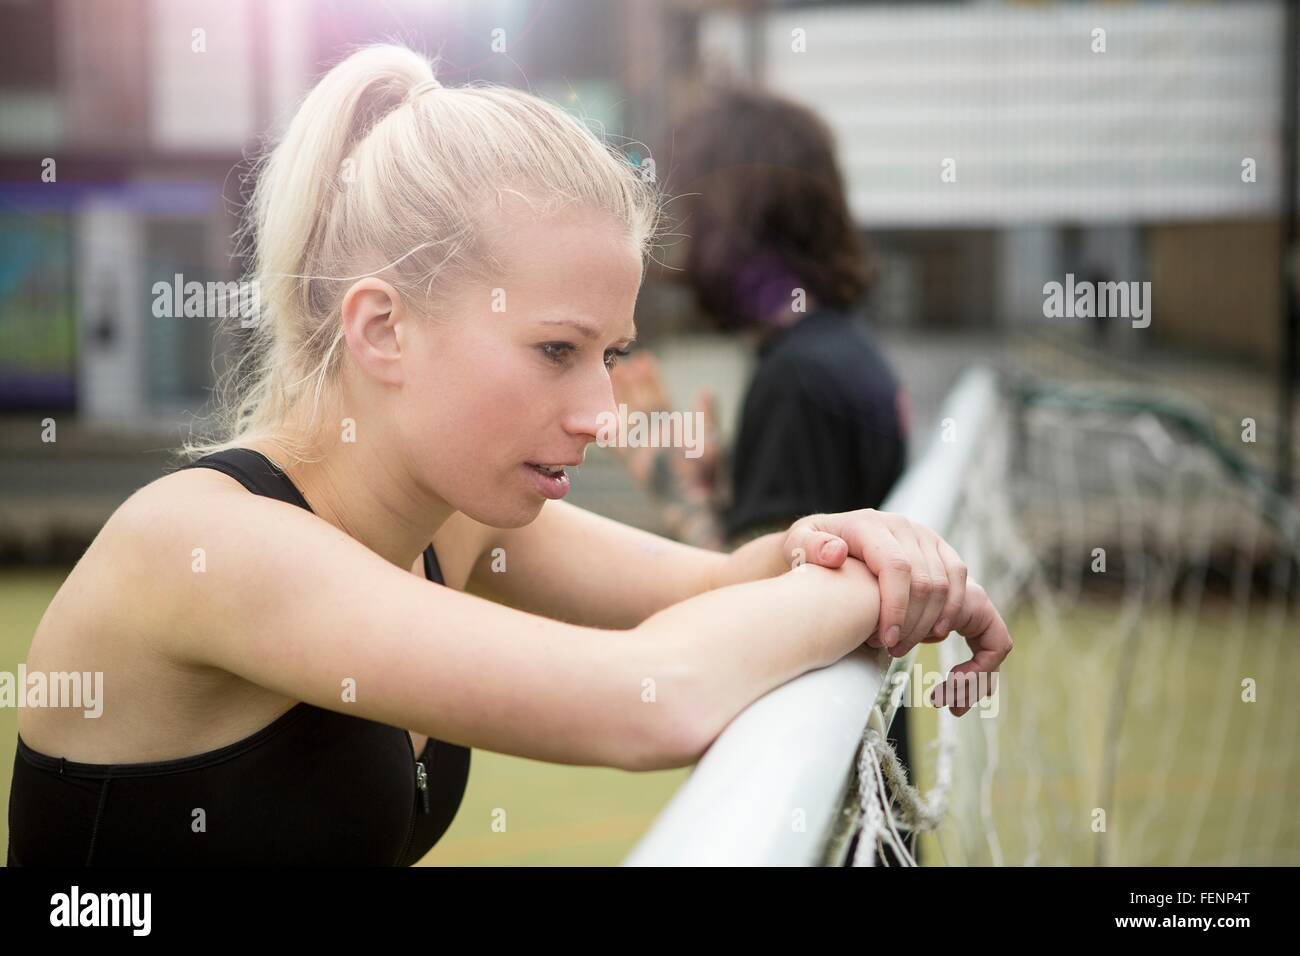 Young woman taking a break, leaning on football goal - Stock Image